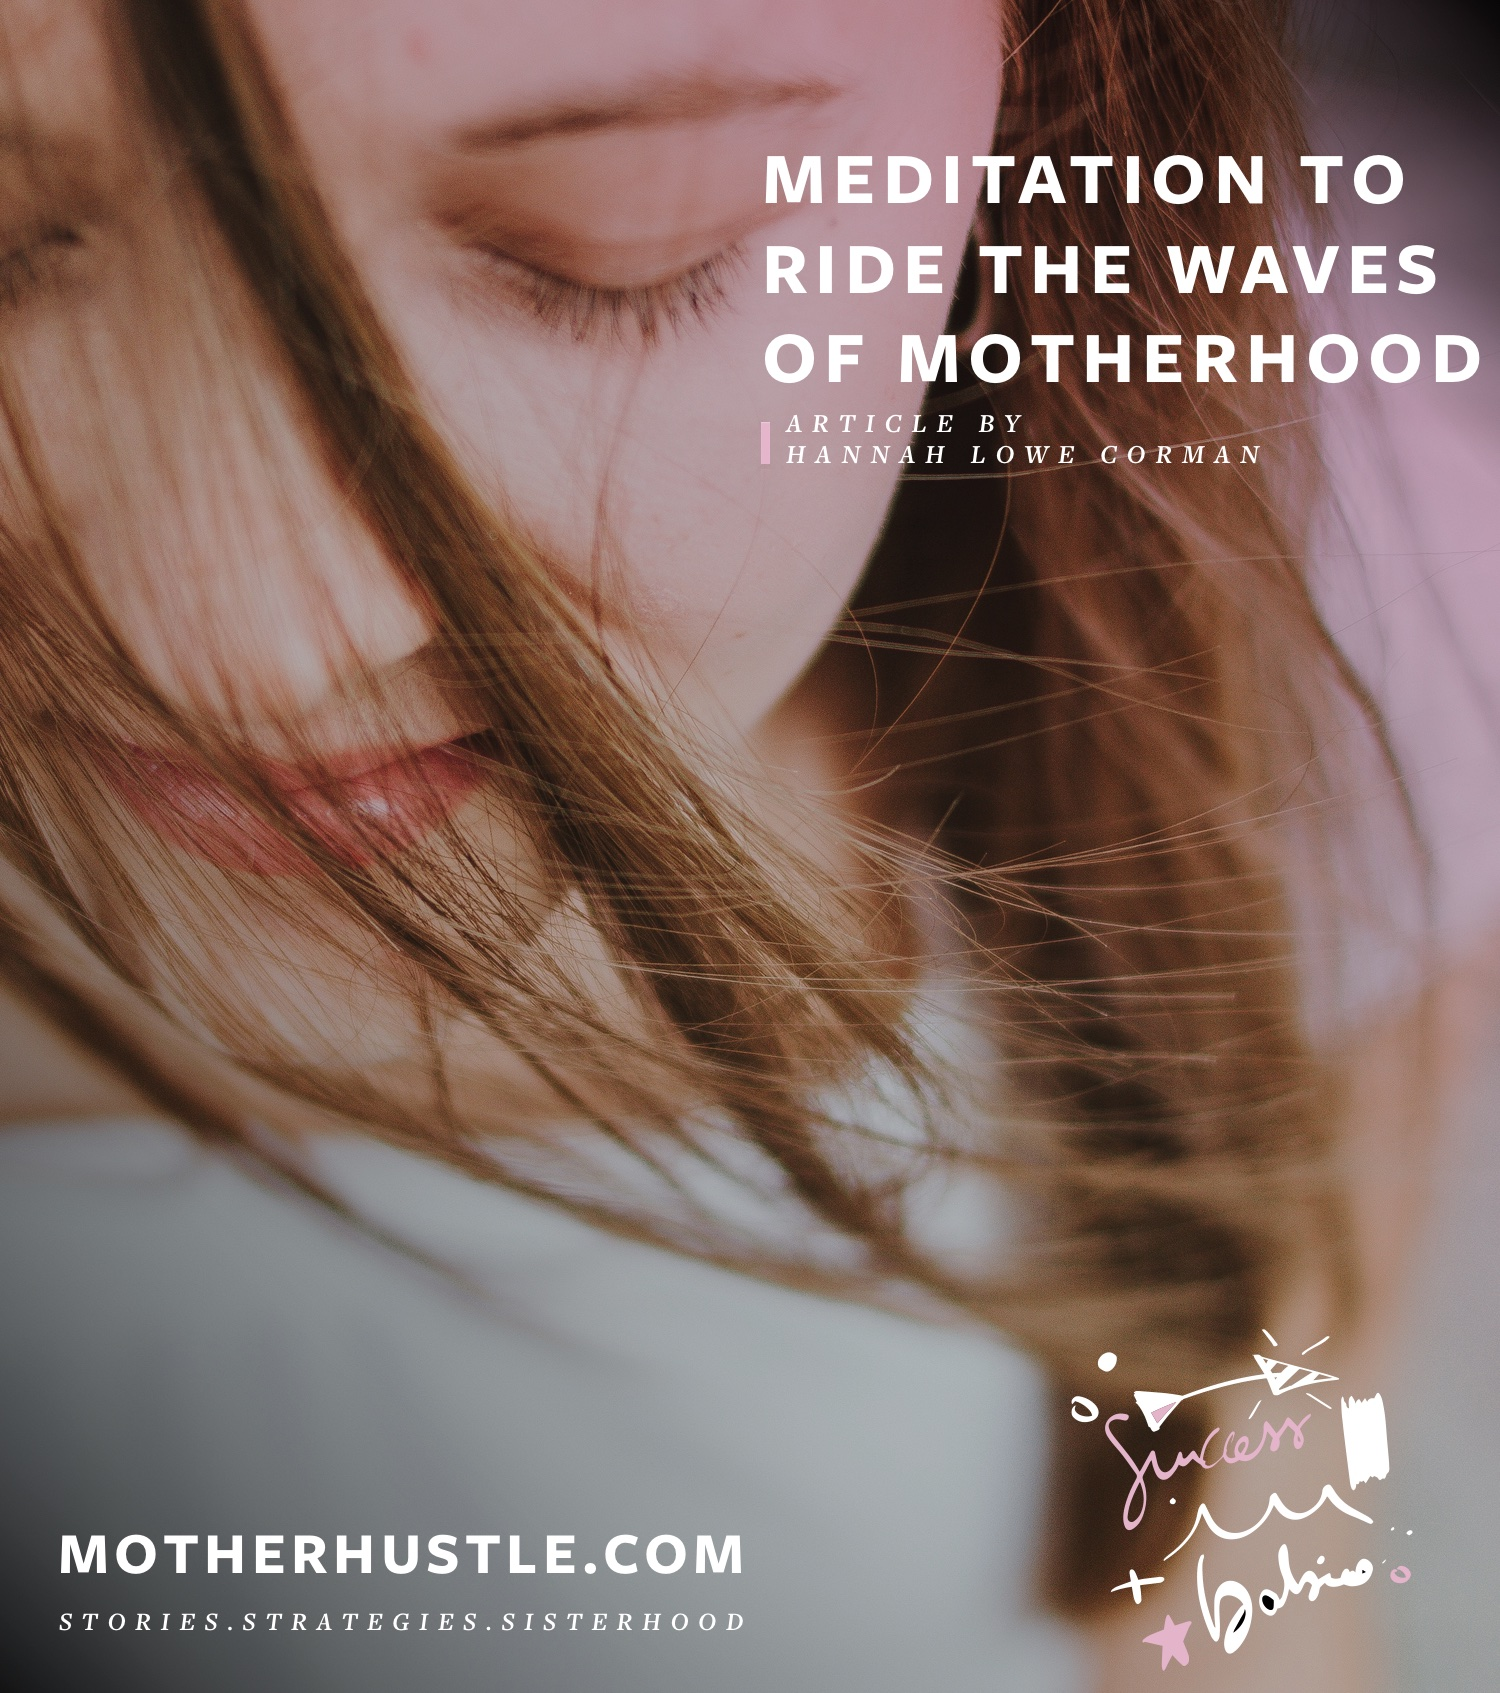 Meditation to Ride the Waves of Motherhood - by Hannah Lowe Corman for MotherHustle